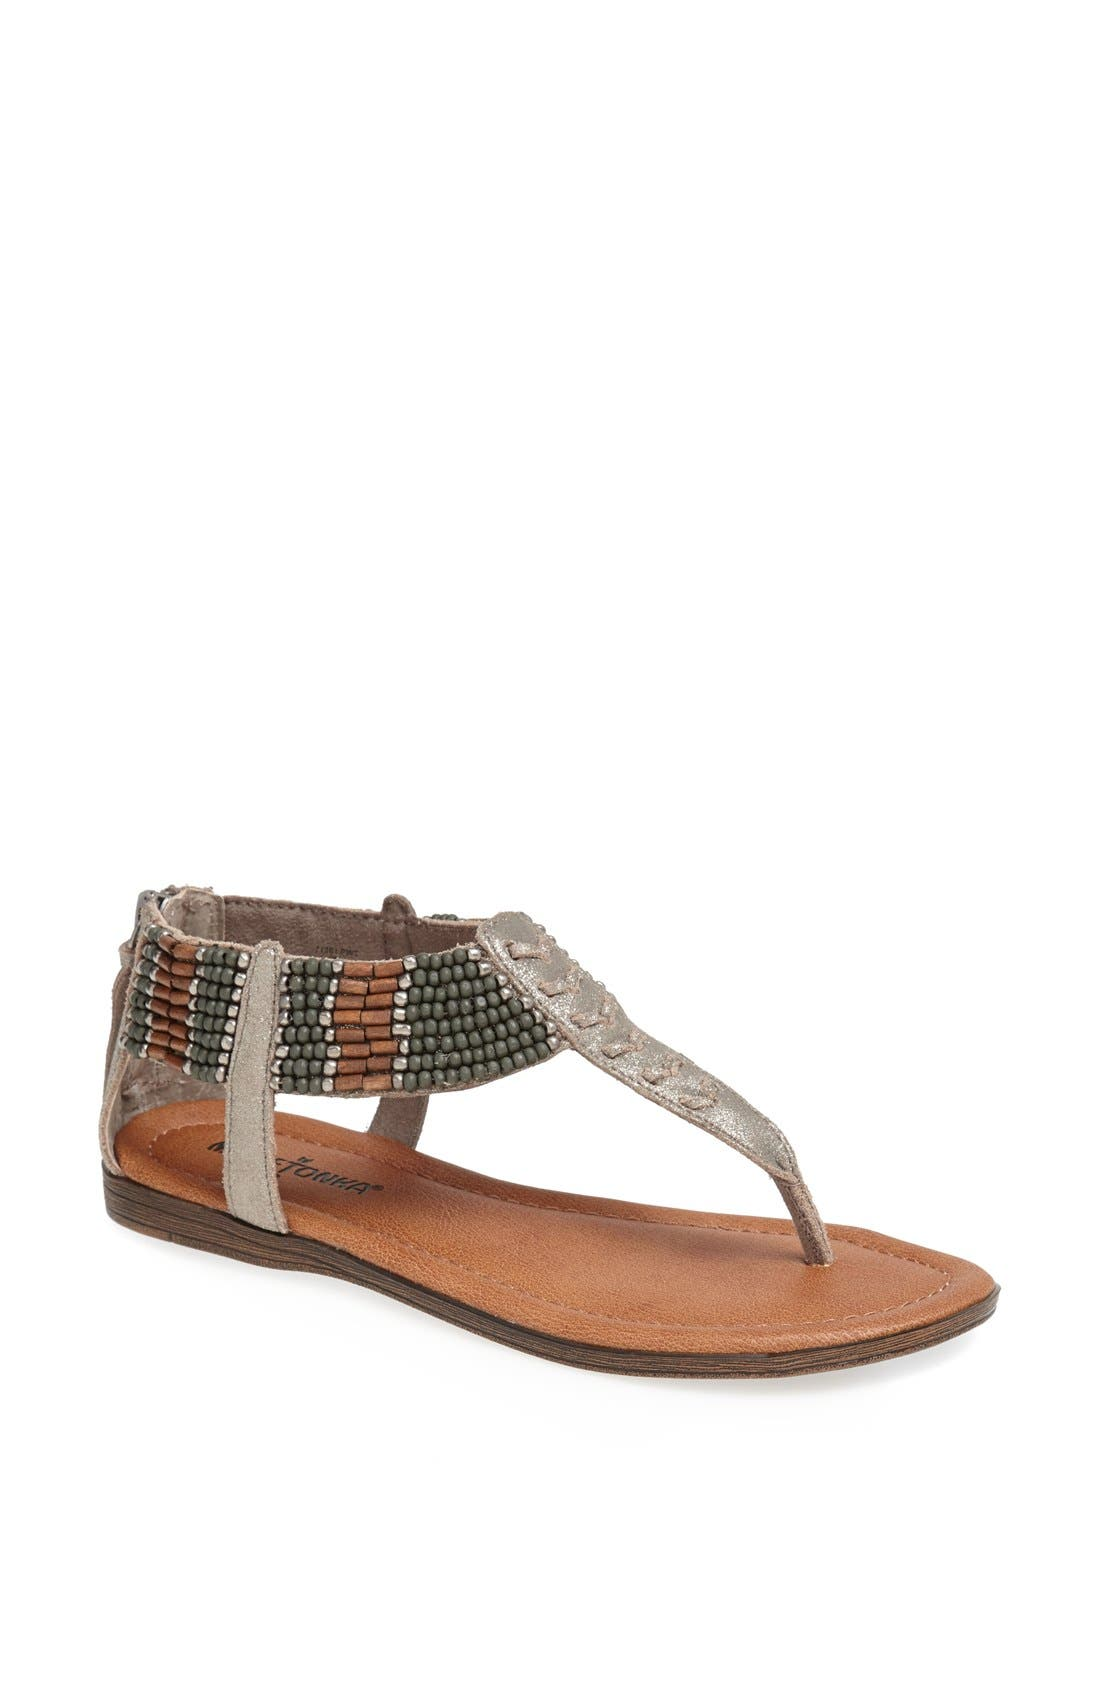 Alternate Image 1 Selected - Minnetonka 'Ibiza' Sandal